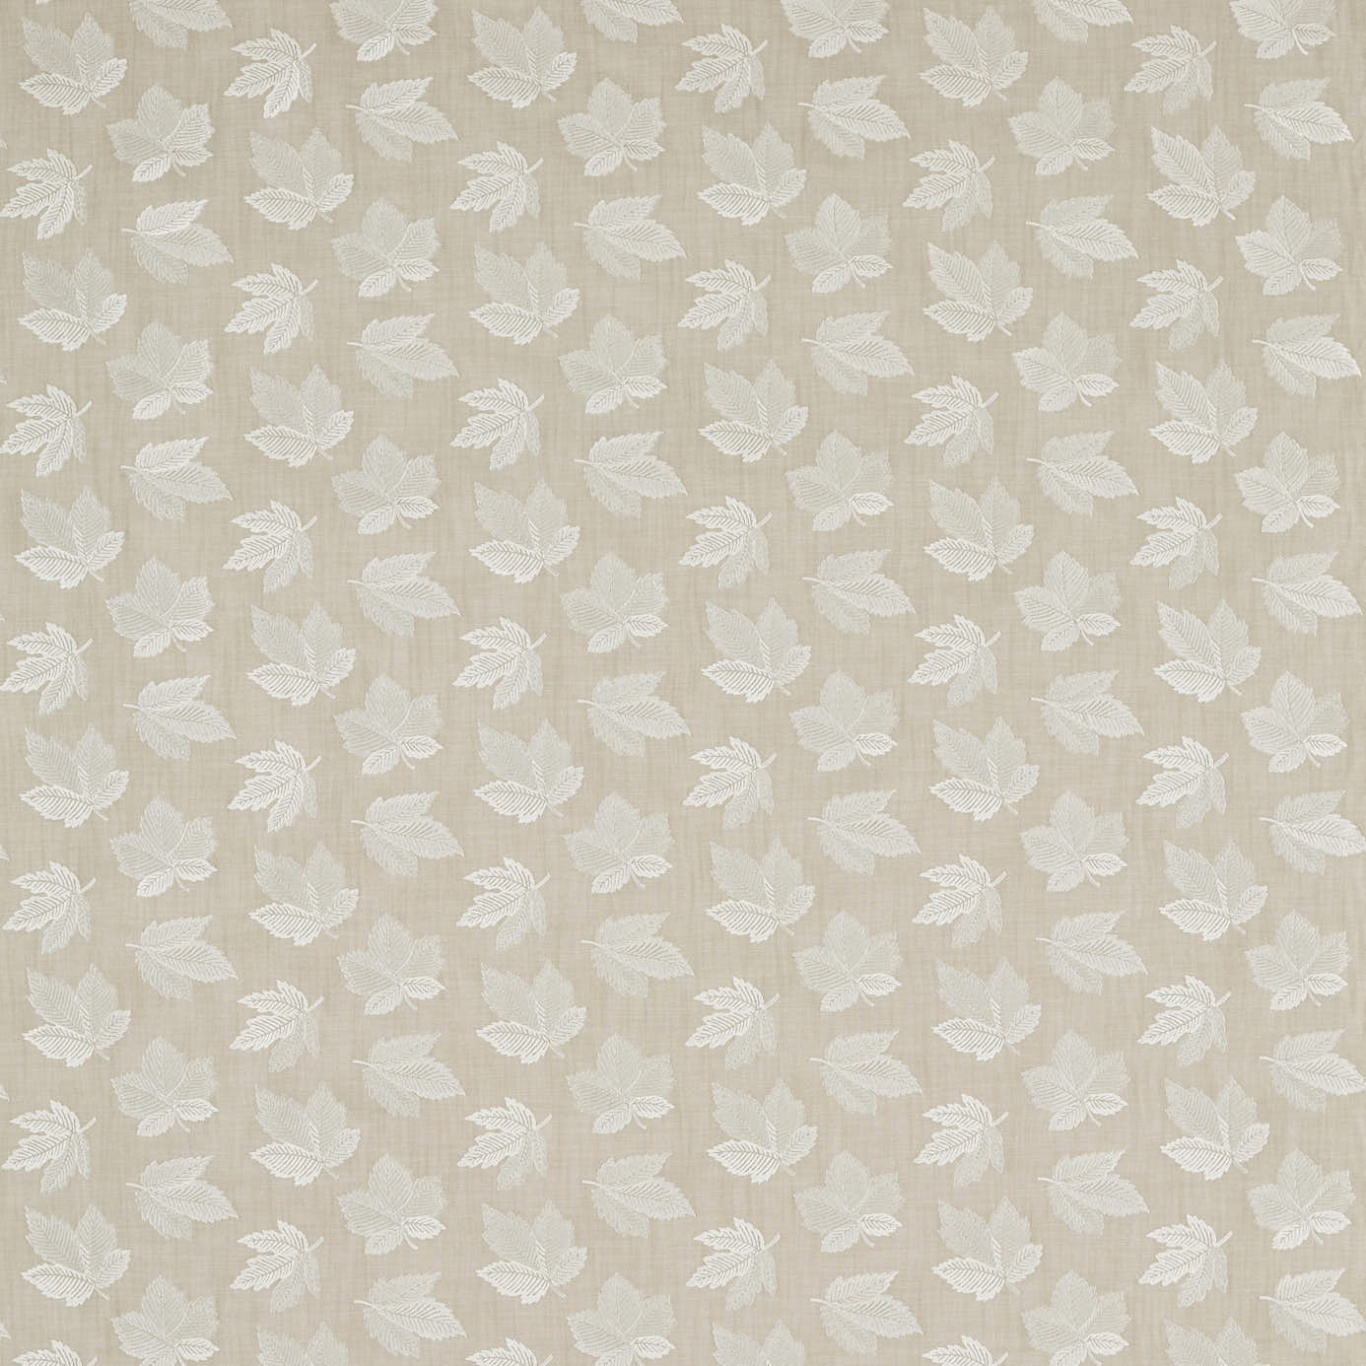 Image of Sanderson Flannery Briarwood/Cream Curtain Fabric 236727